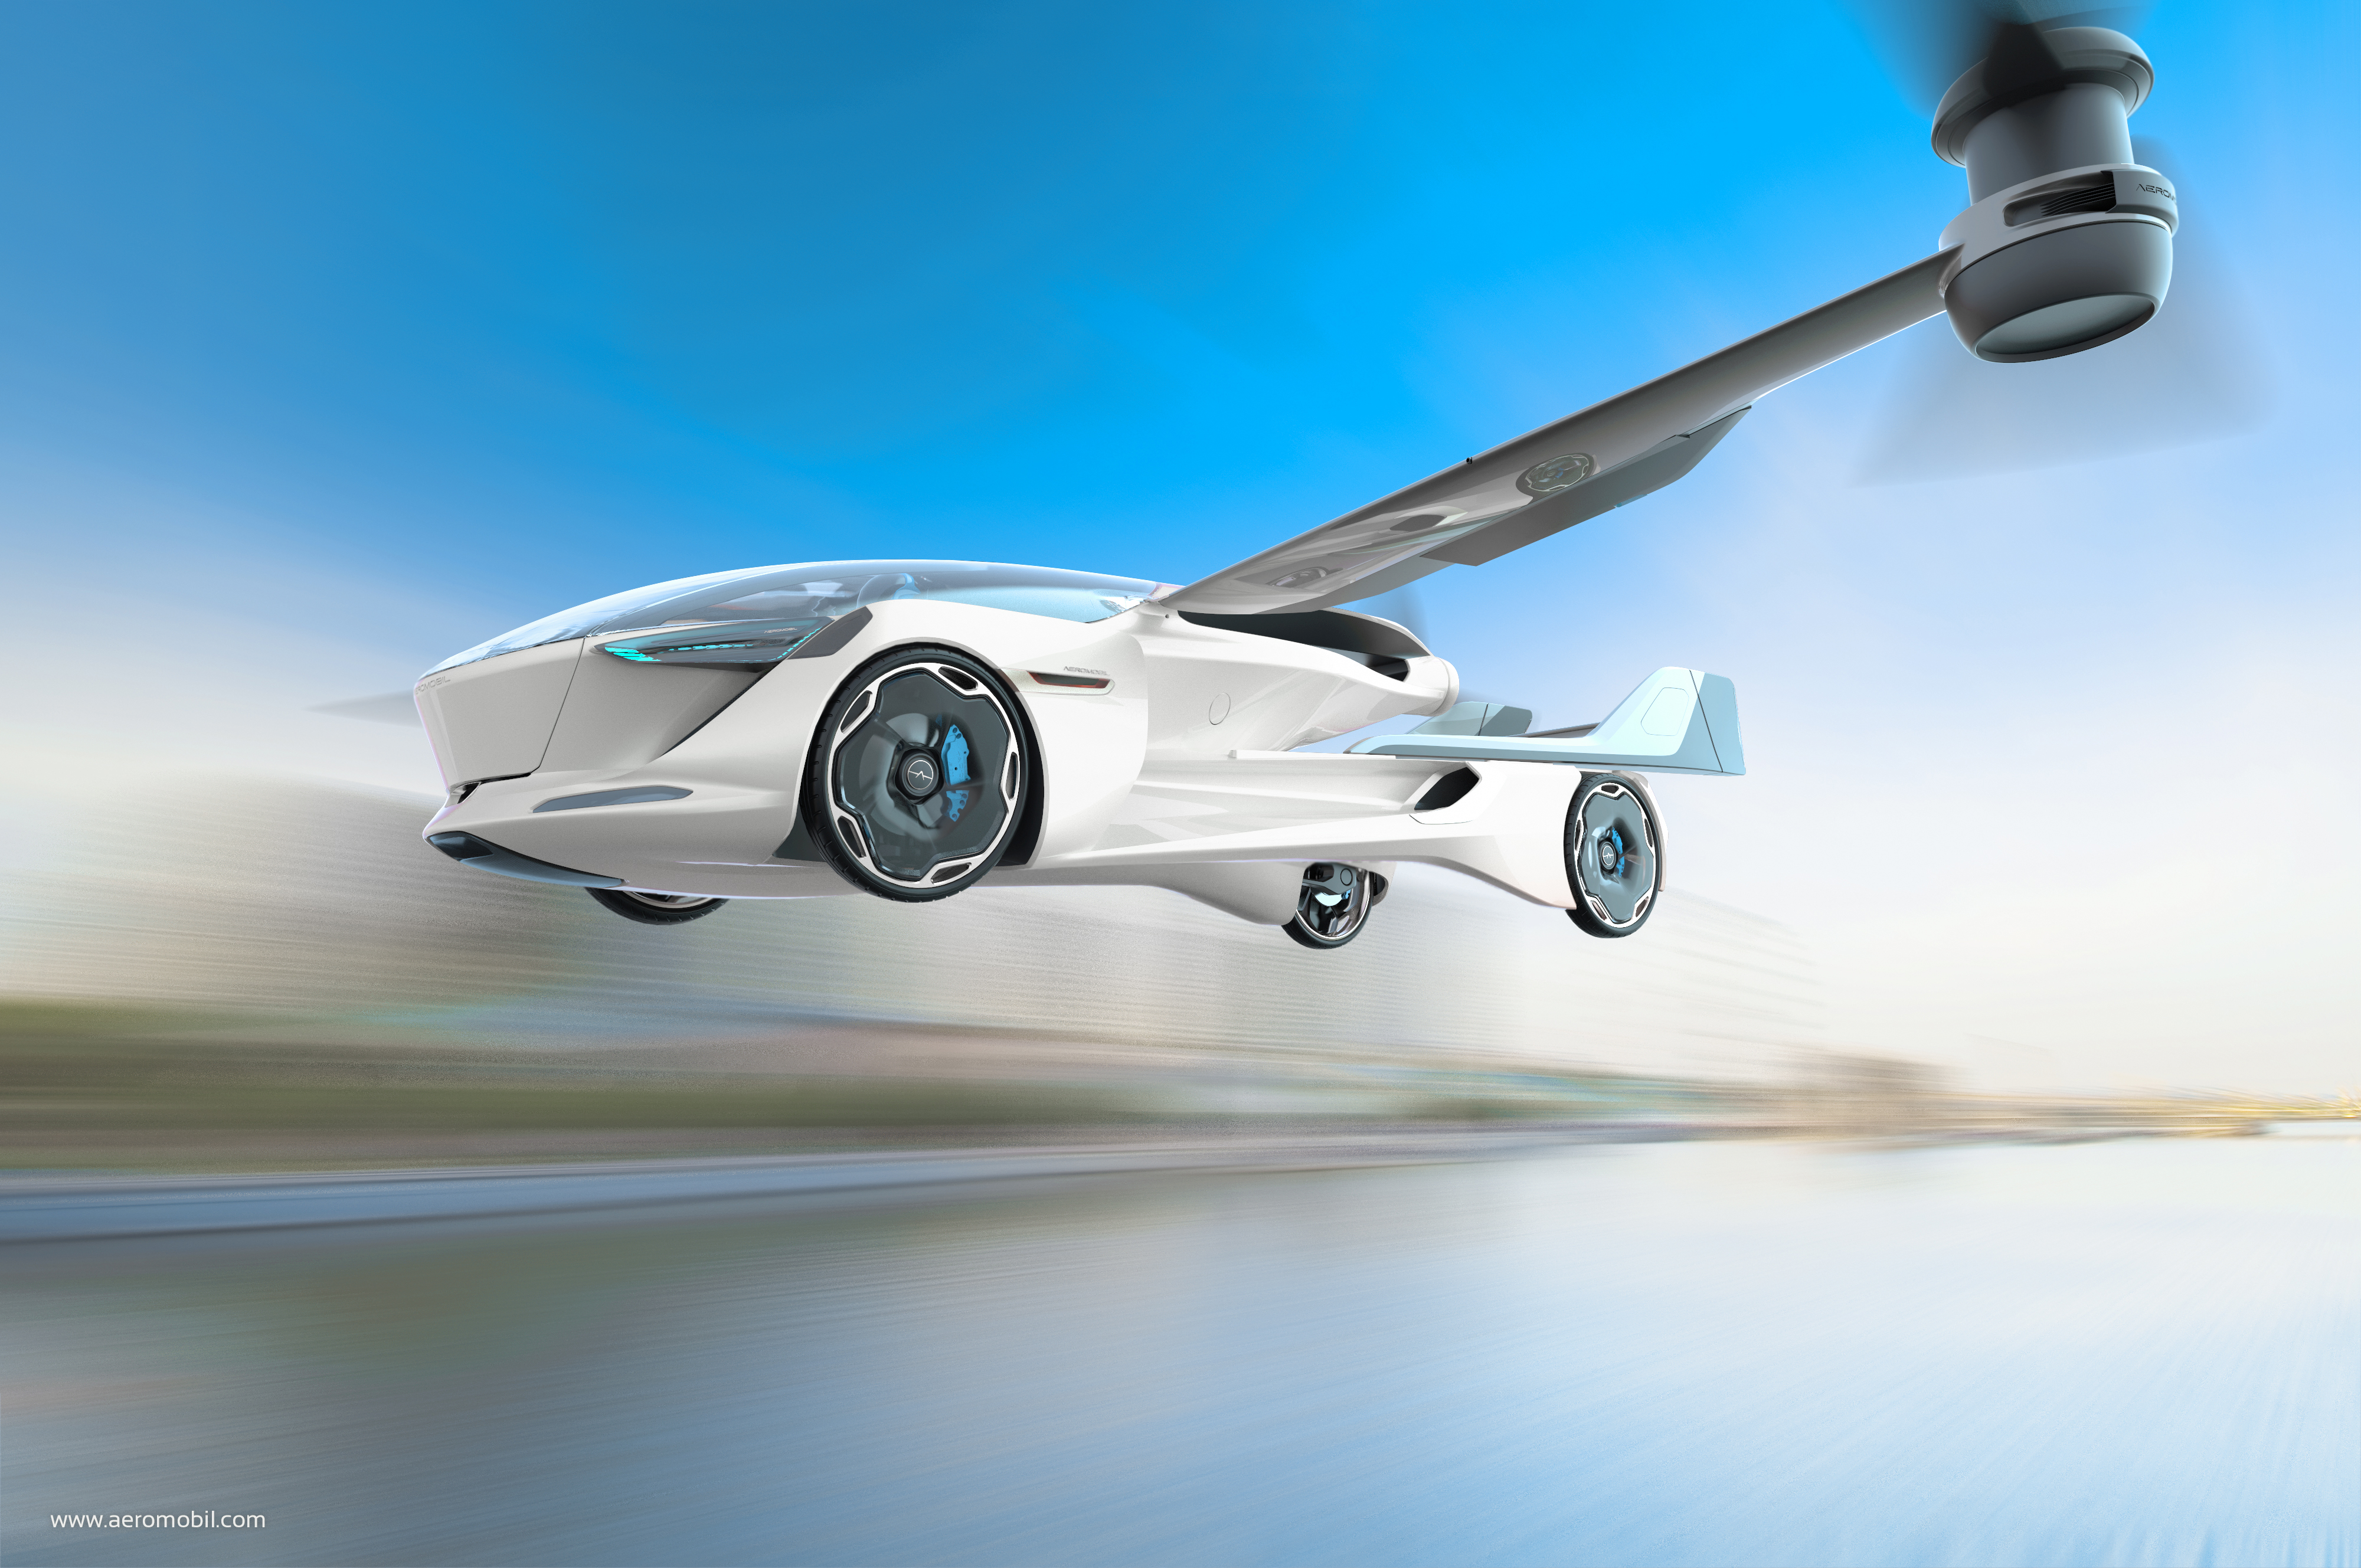 AeroMobil's new electric flying car concept is a sporty 4-seater